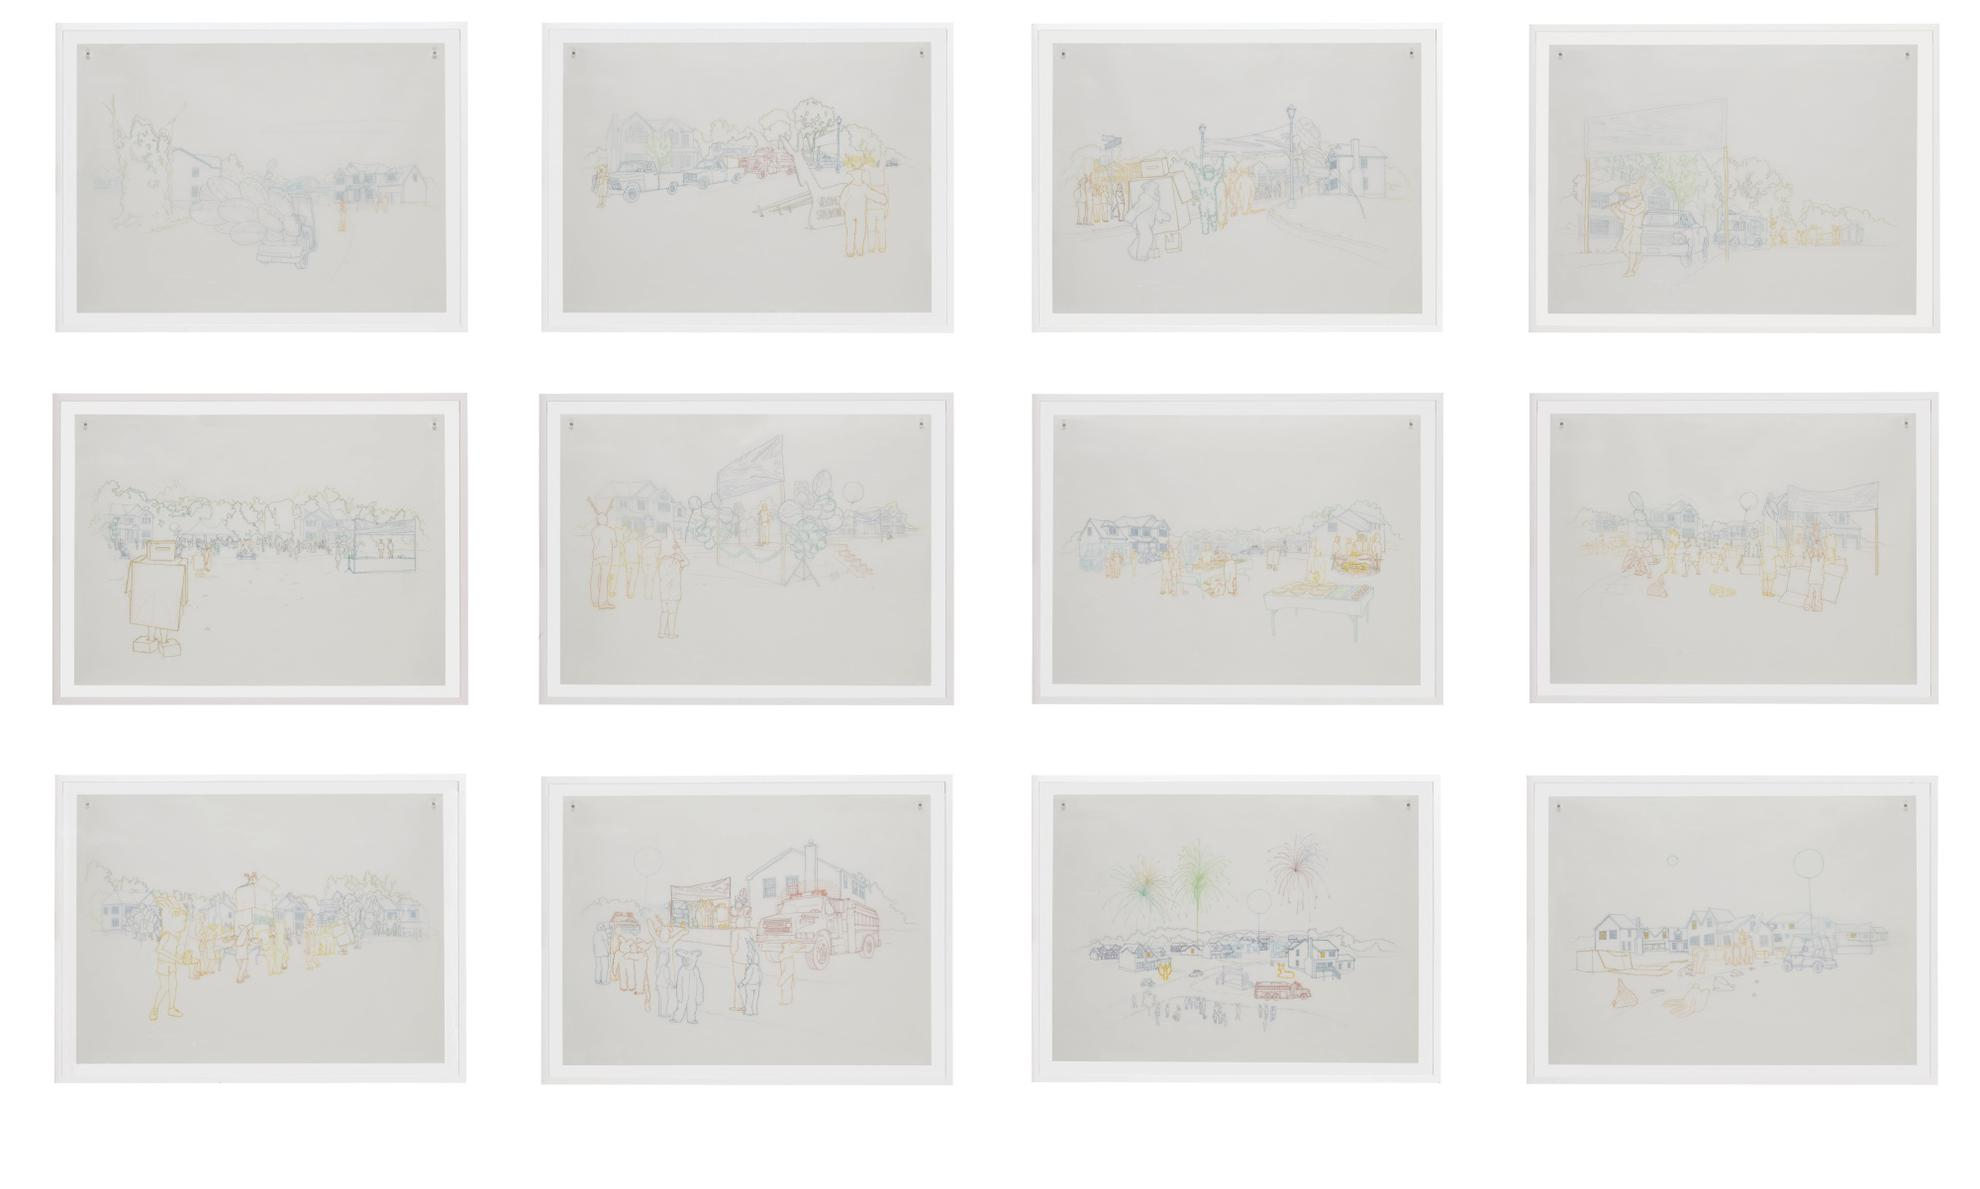 Pierre Huyghe-Streamside Day, Celebration Sketches-2004